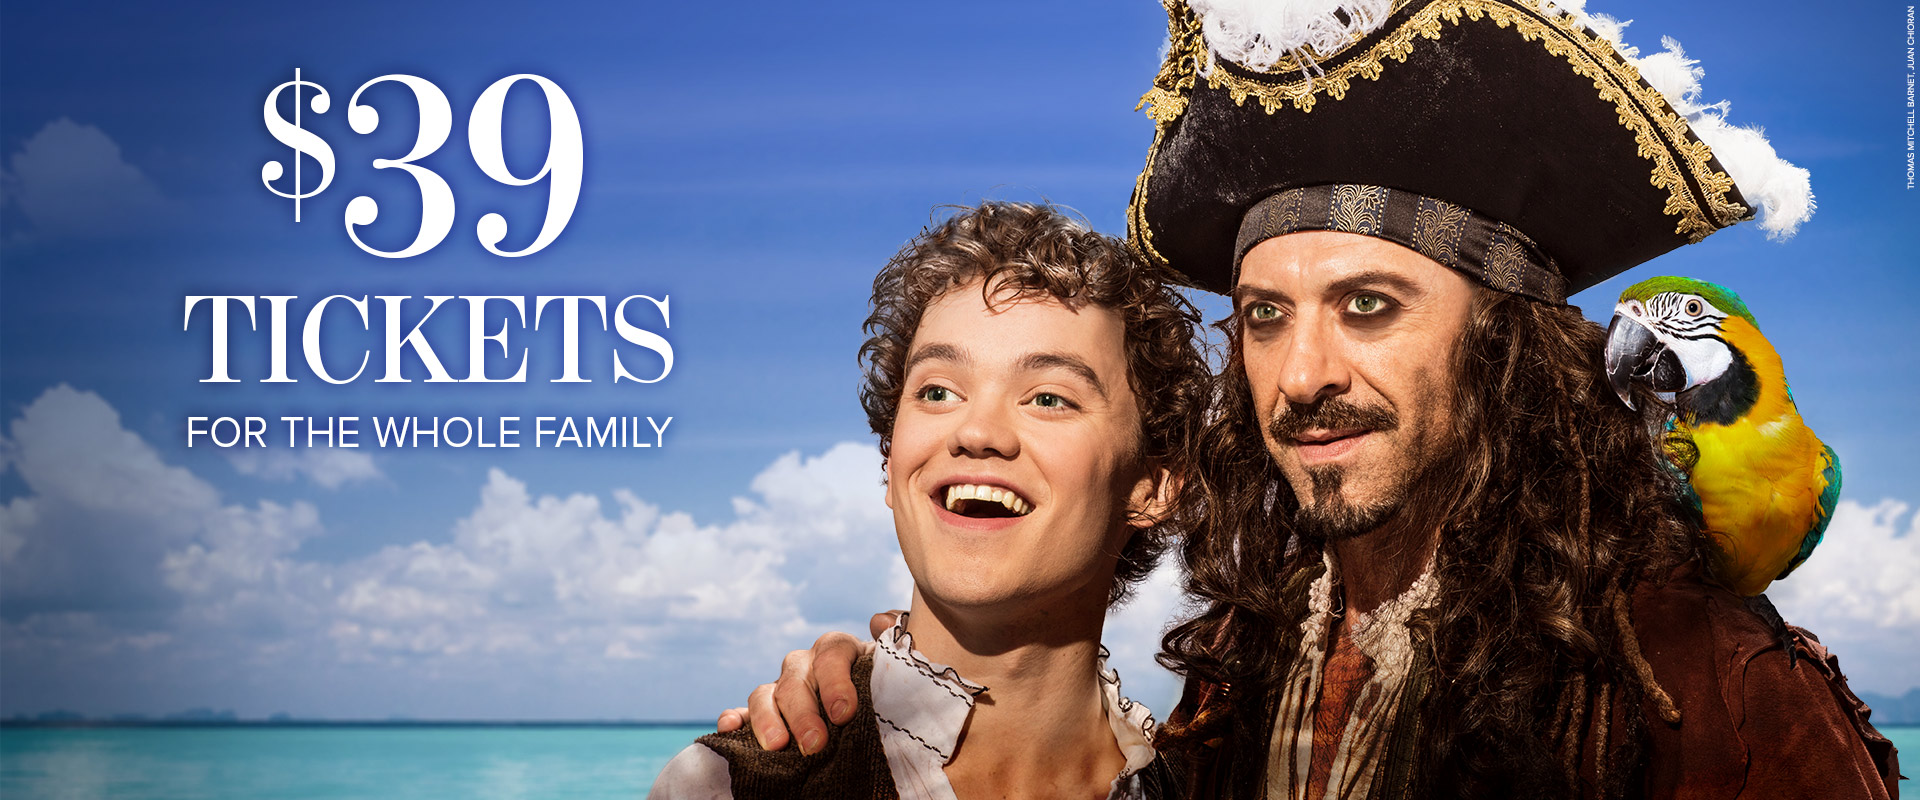 Publicity image from Treasure Island linking to Family Day Deal